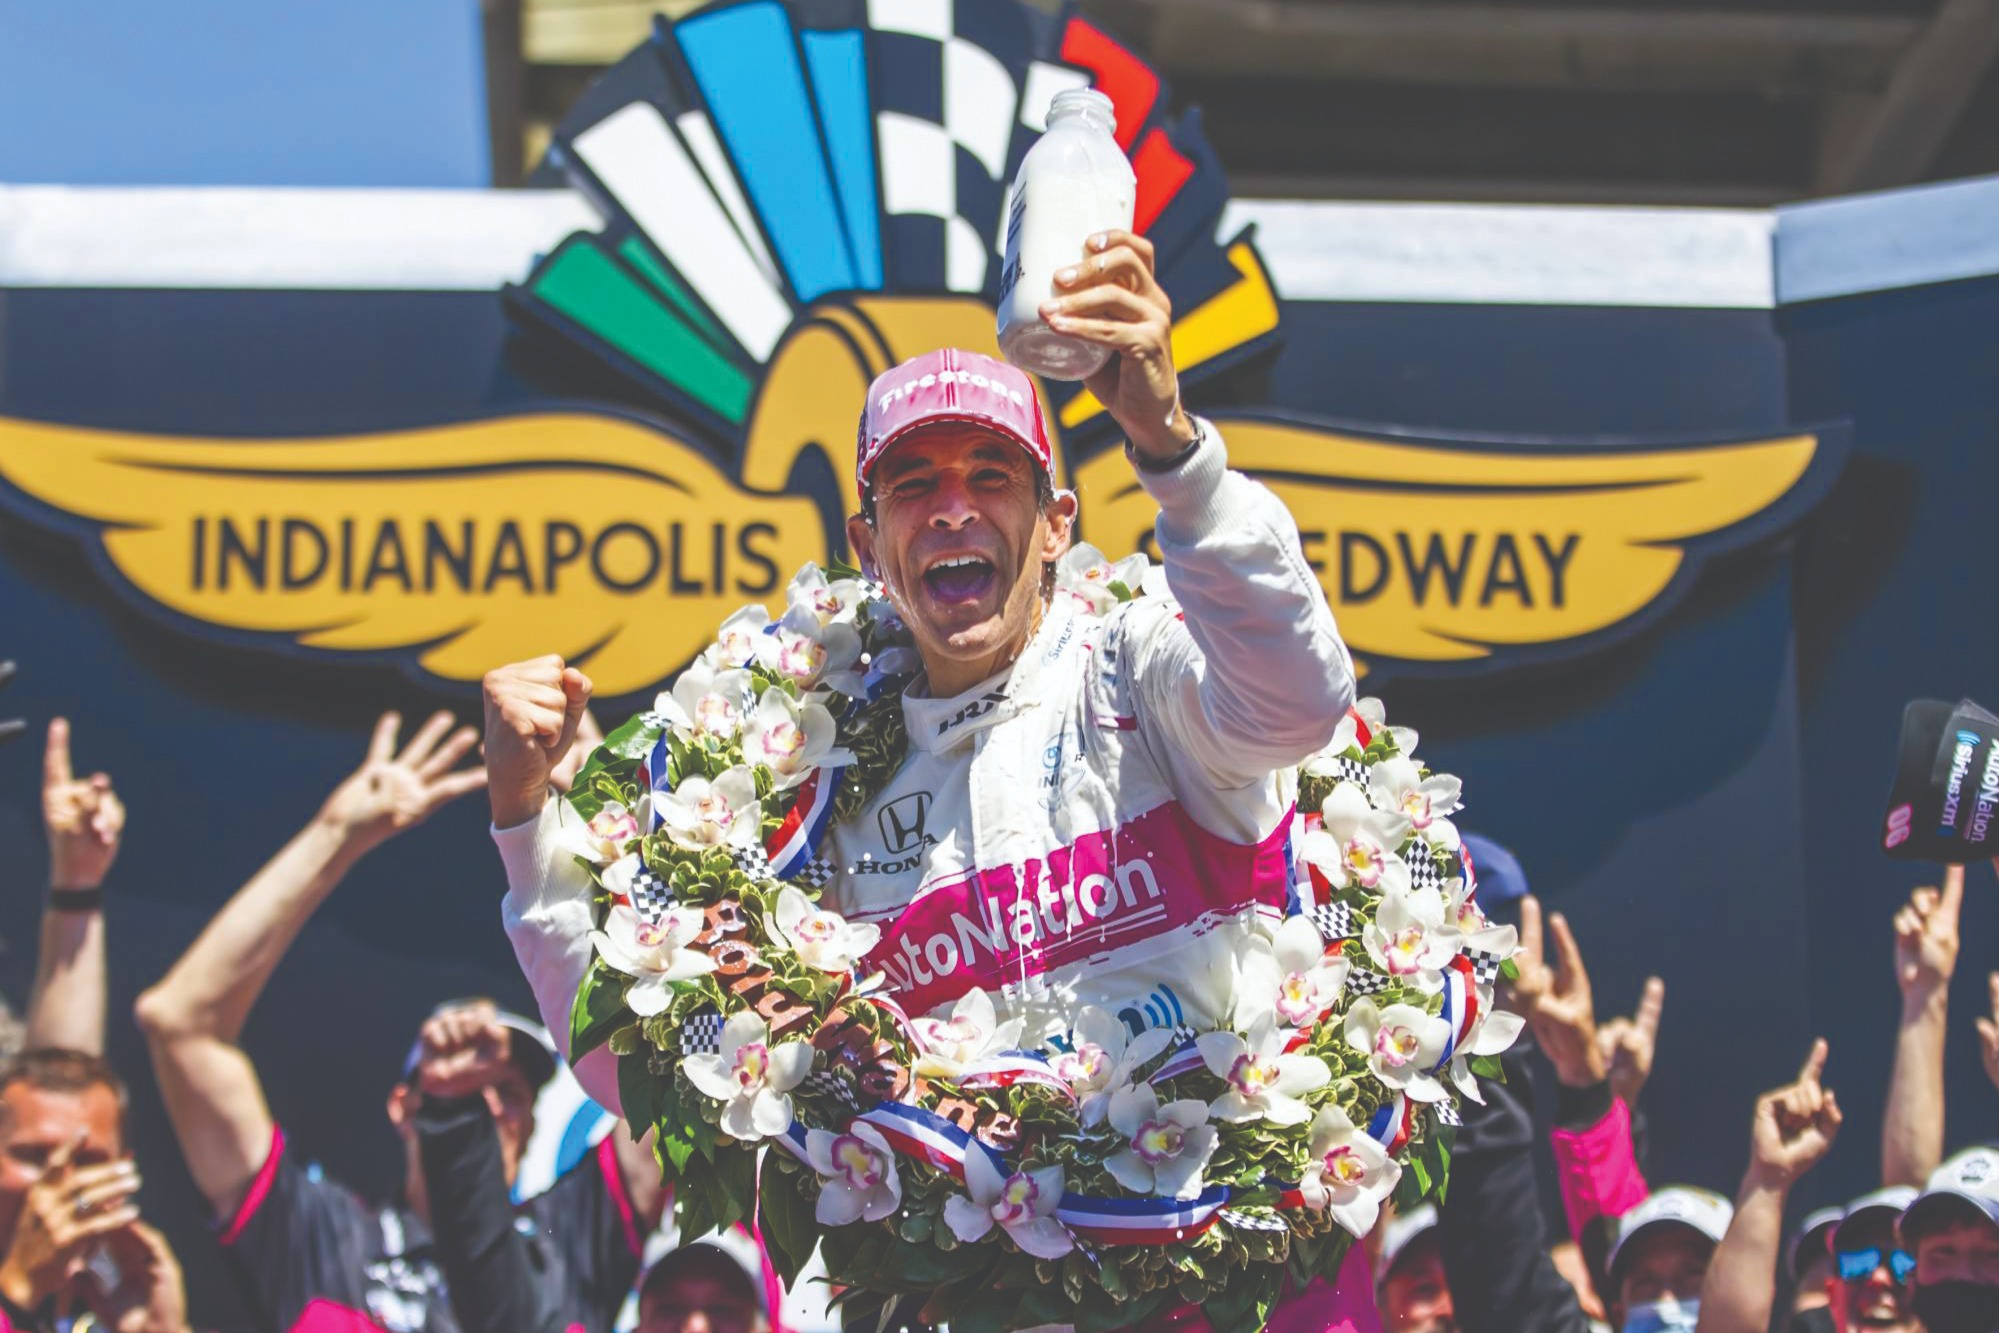 HRX helped lay groundwork for Castroneves' fourth Indy 500 win four months earlier